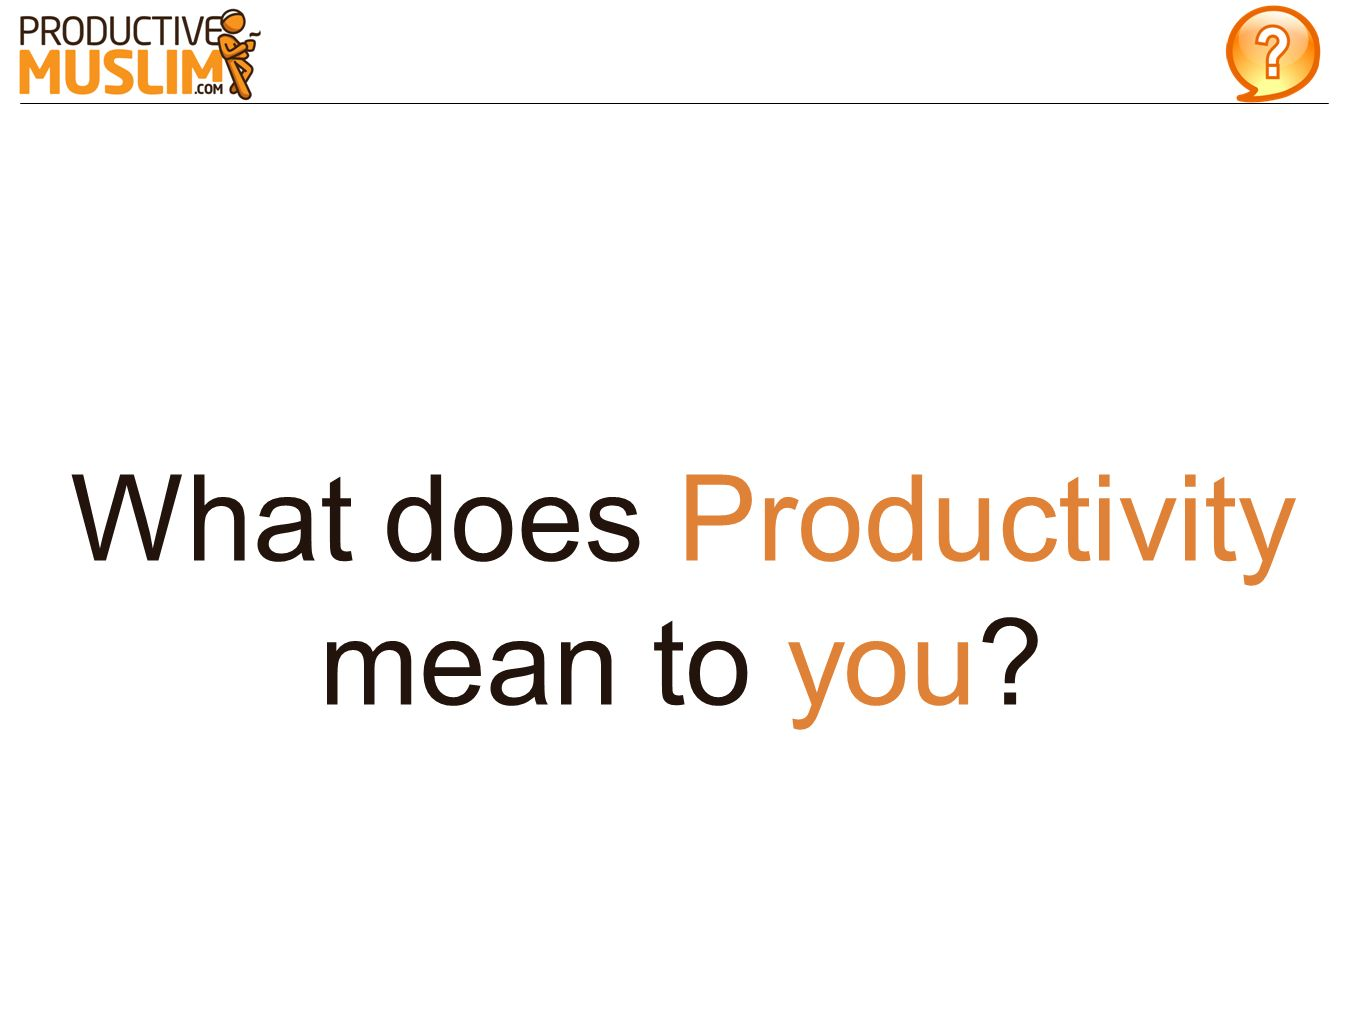 What does Productivity mean to you